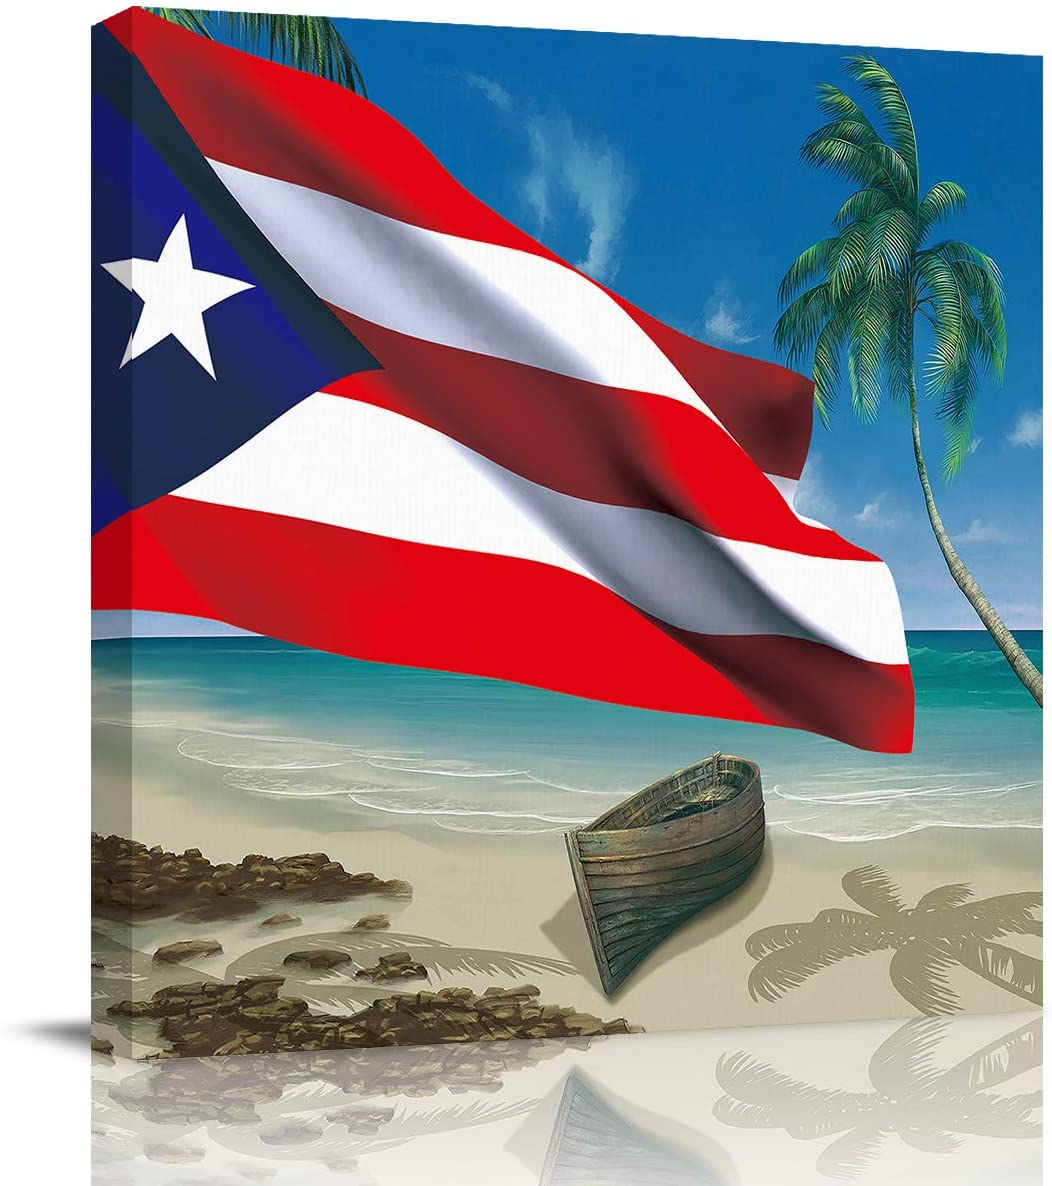 Chucoco Oil Paintings On Canvas Wall Art Ocean Beach Puerto Rico Flag Photo Poster Prints Modern Artwork Home Decor for Living Room Kitchen, Stretched and Framed Ready to Hang,Coastal Boat